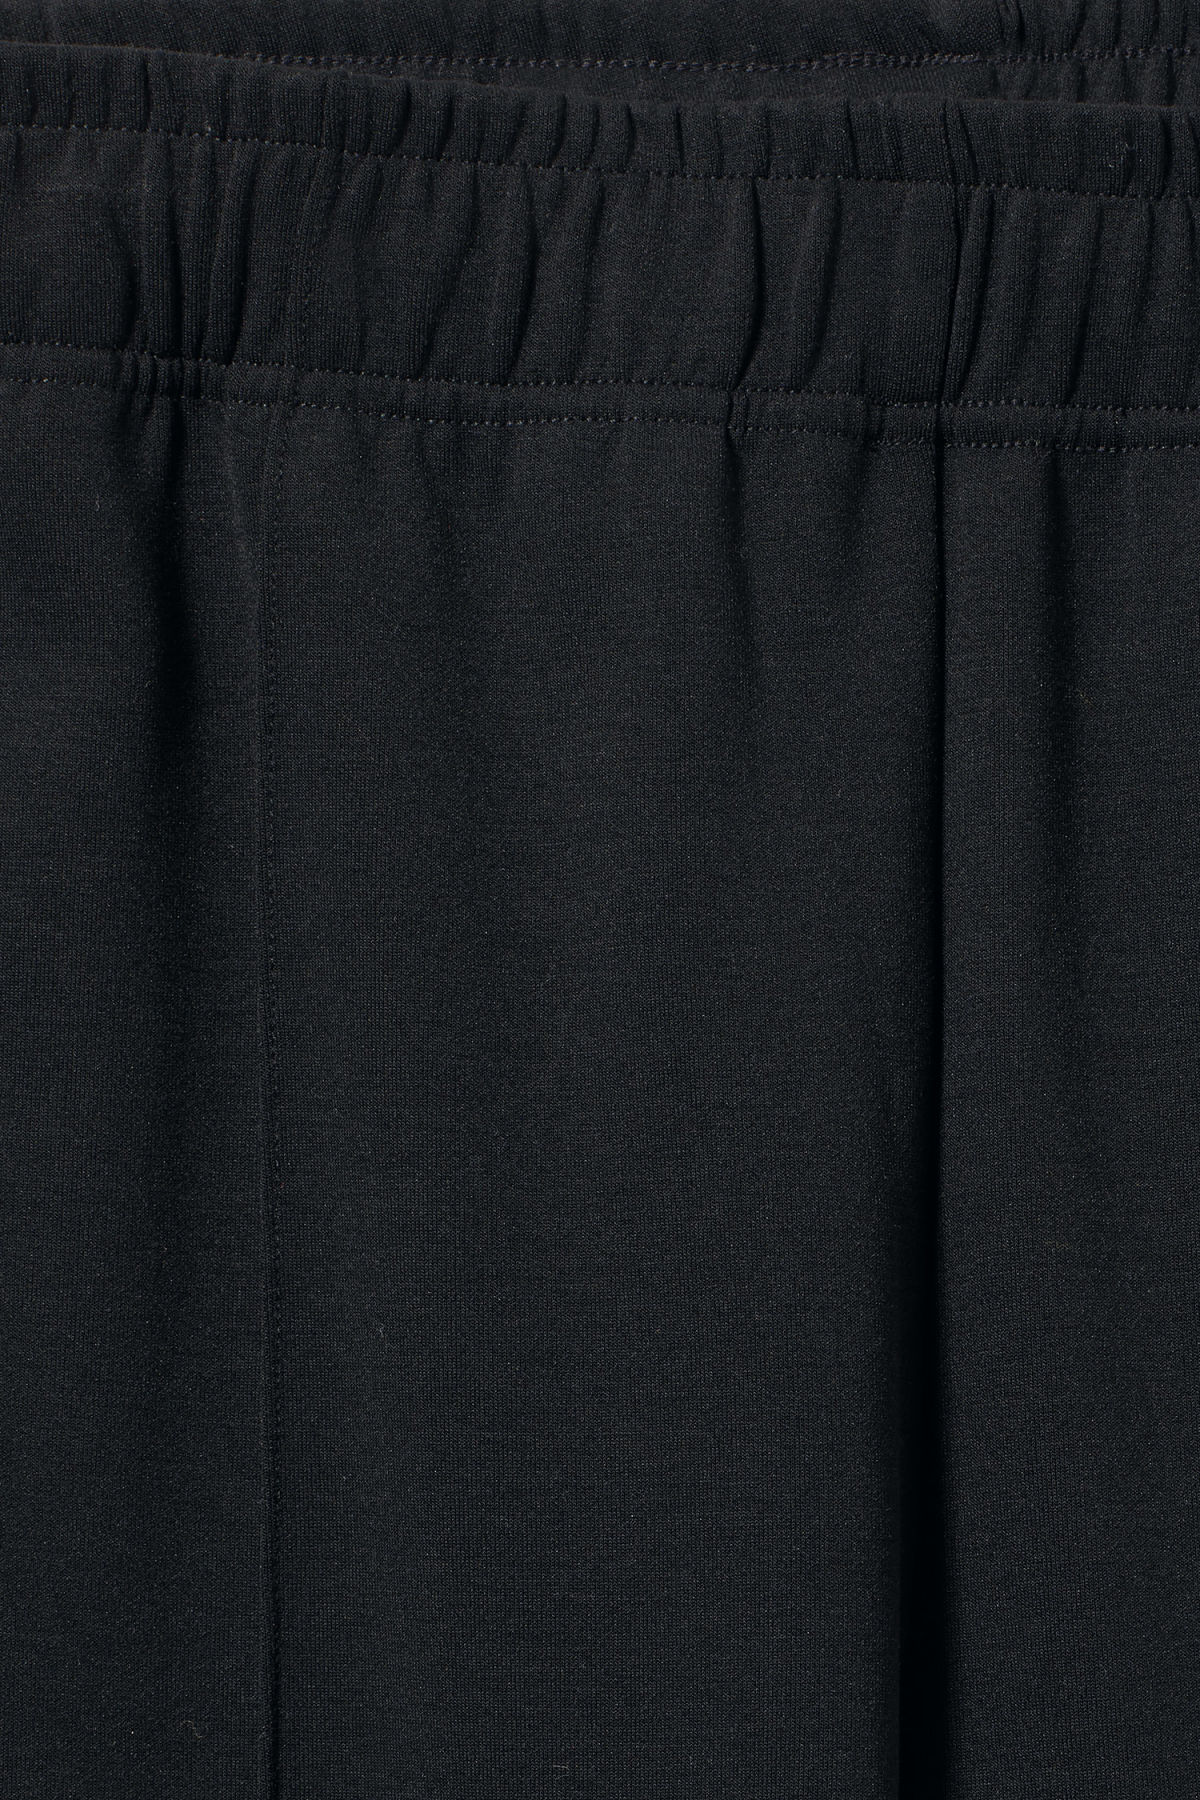 Detailed image of Weekday local sweatpants in black